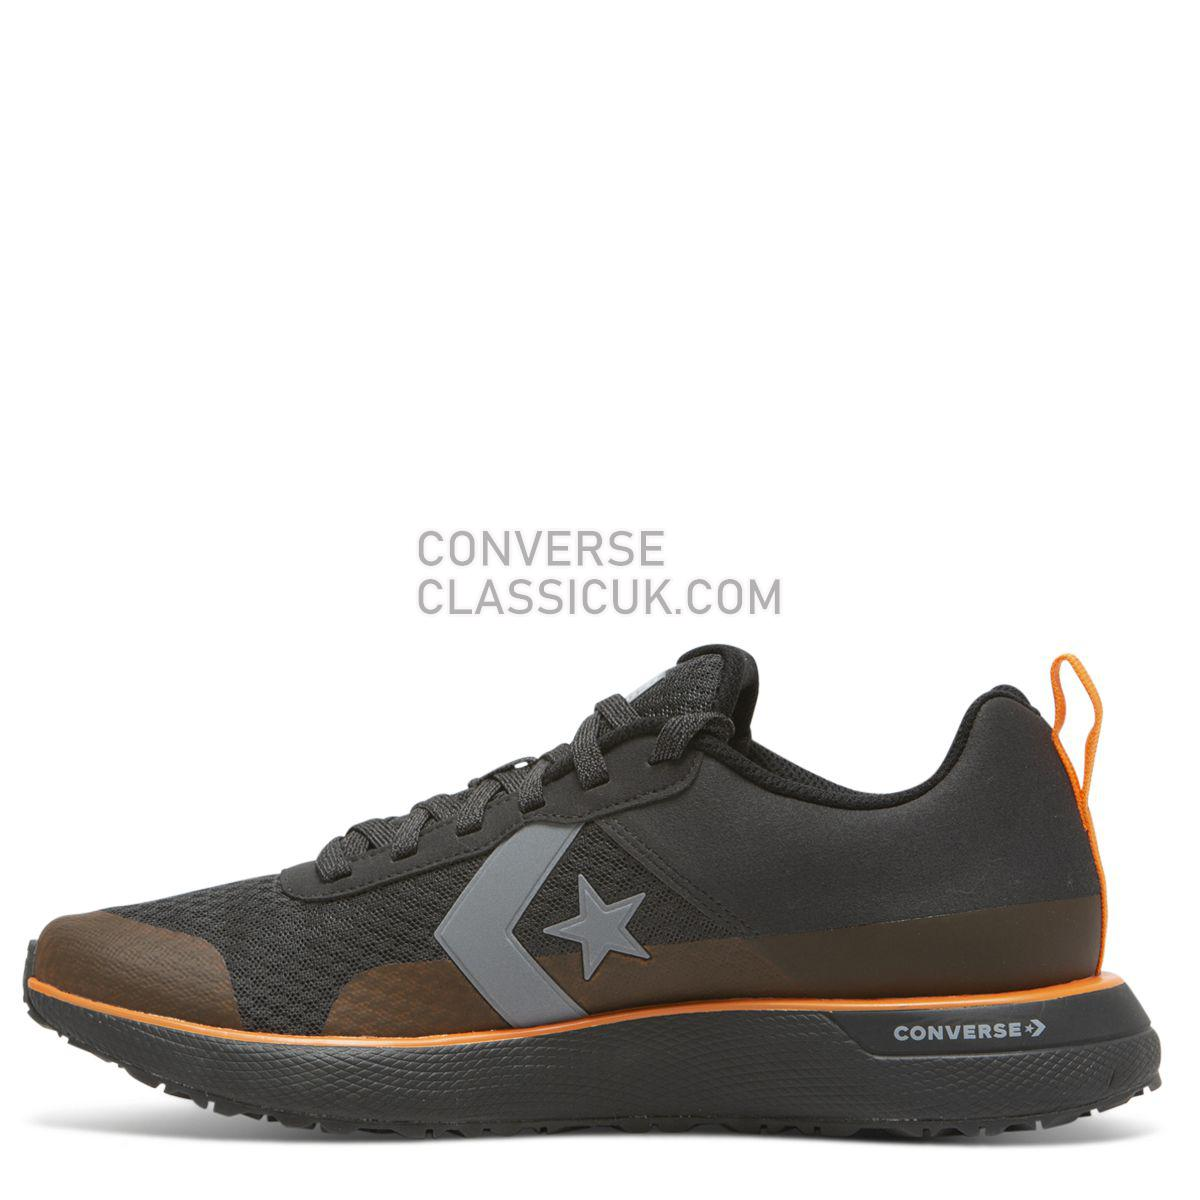 Converse X Tinker Hatfield Star Series RN Low Top Black Mens 165594 Almost Black/Bold Mandarin Shoes